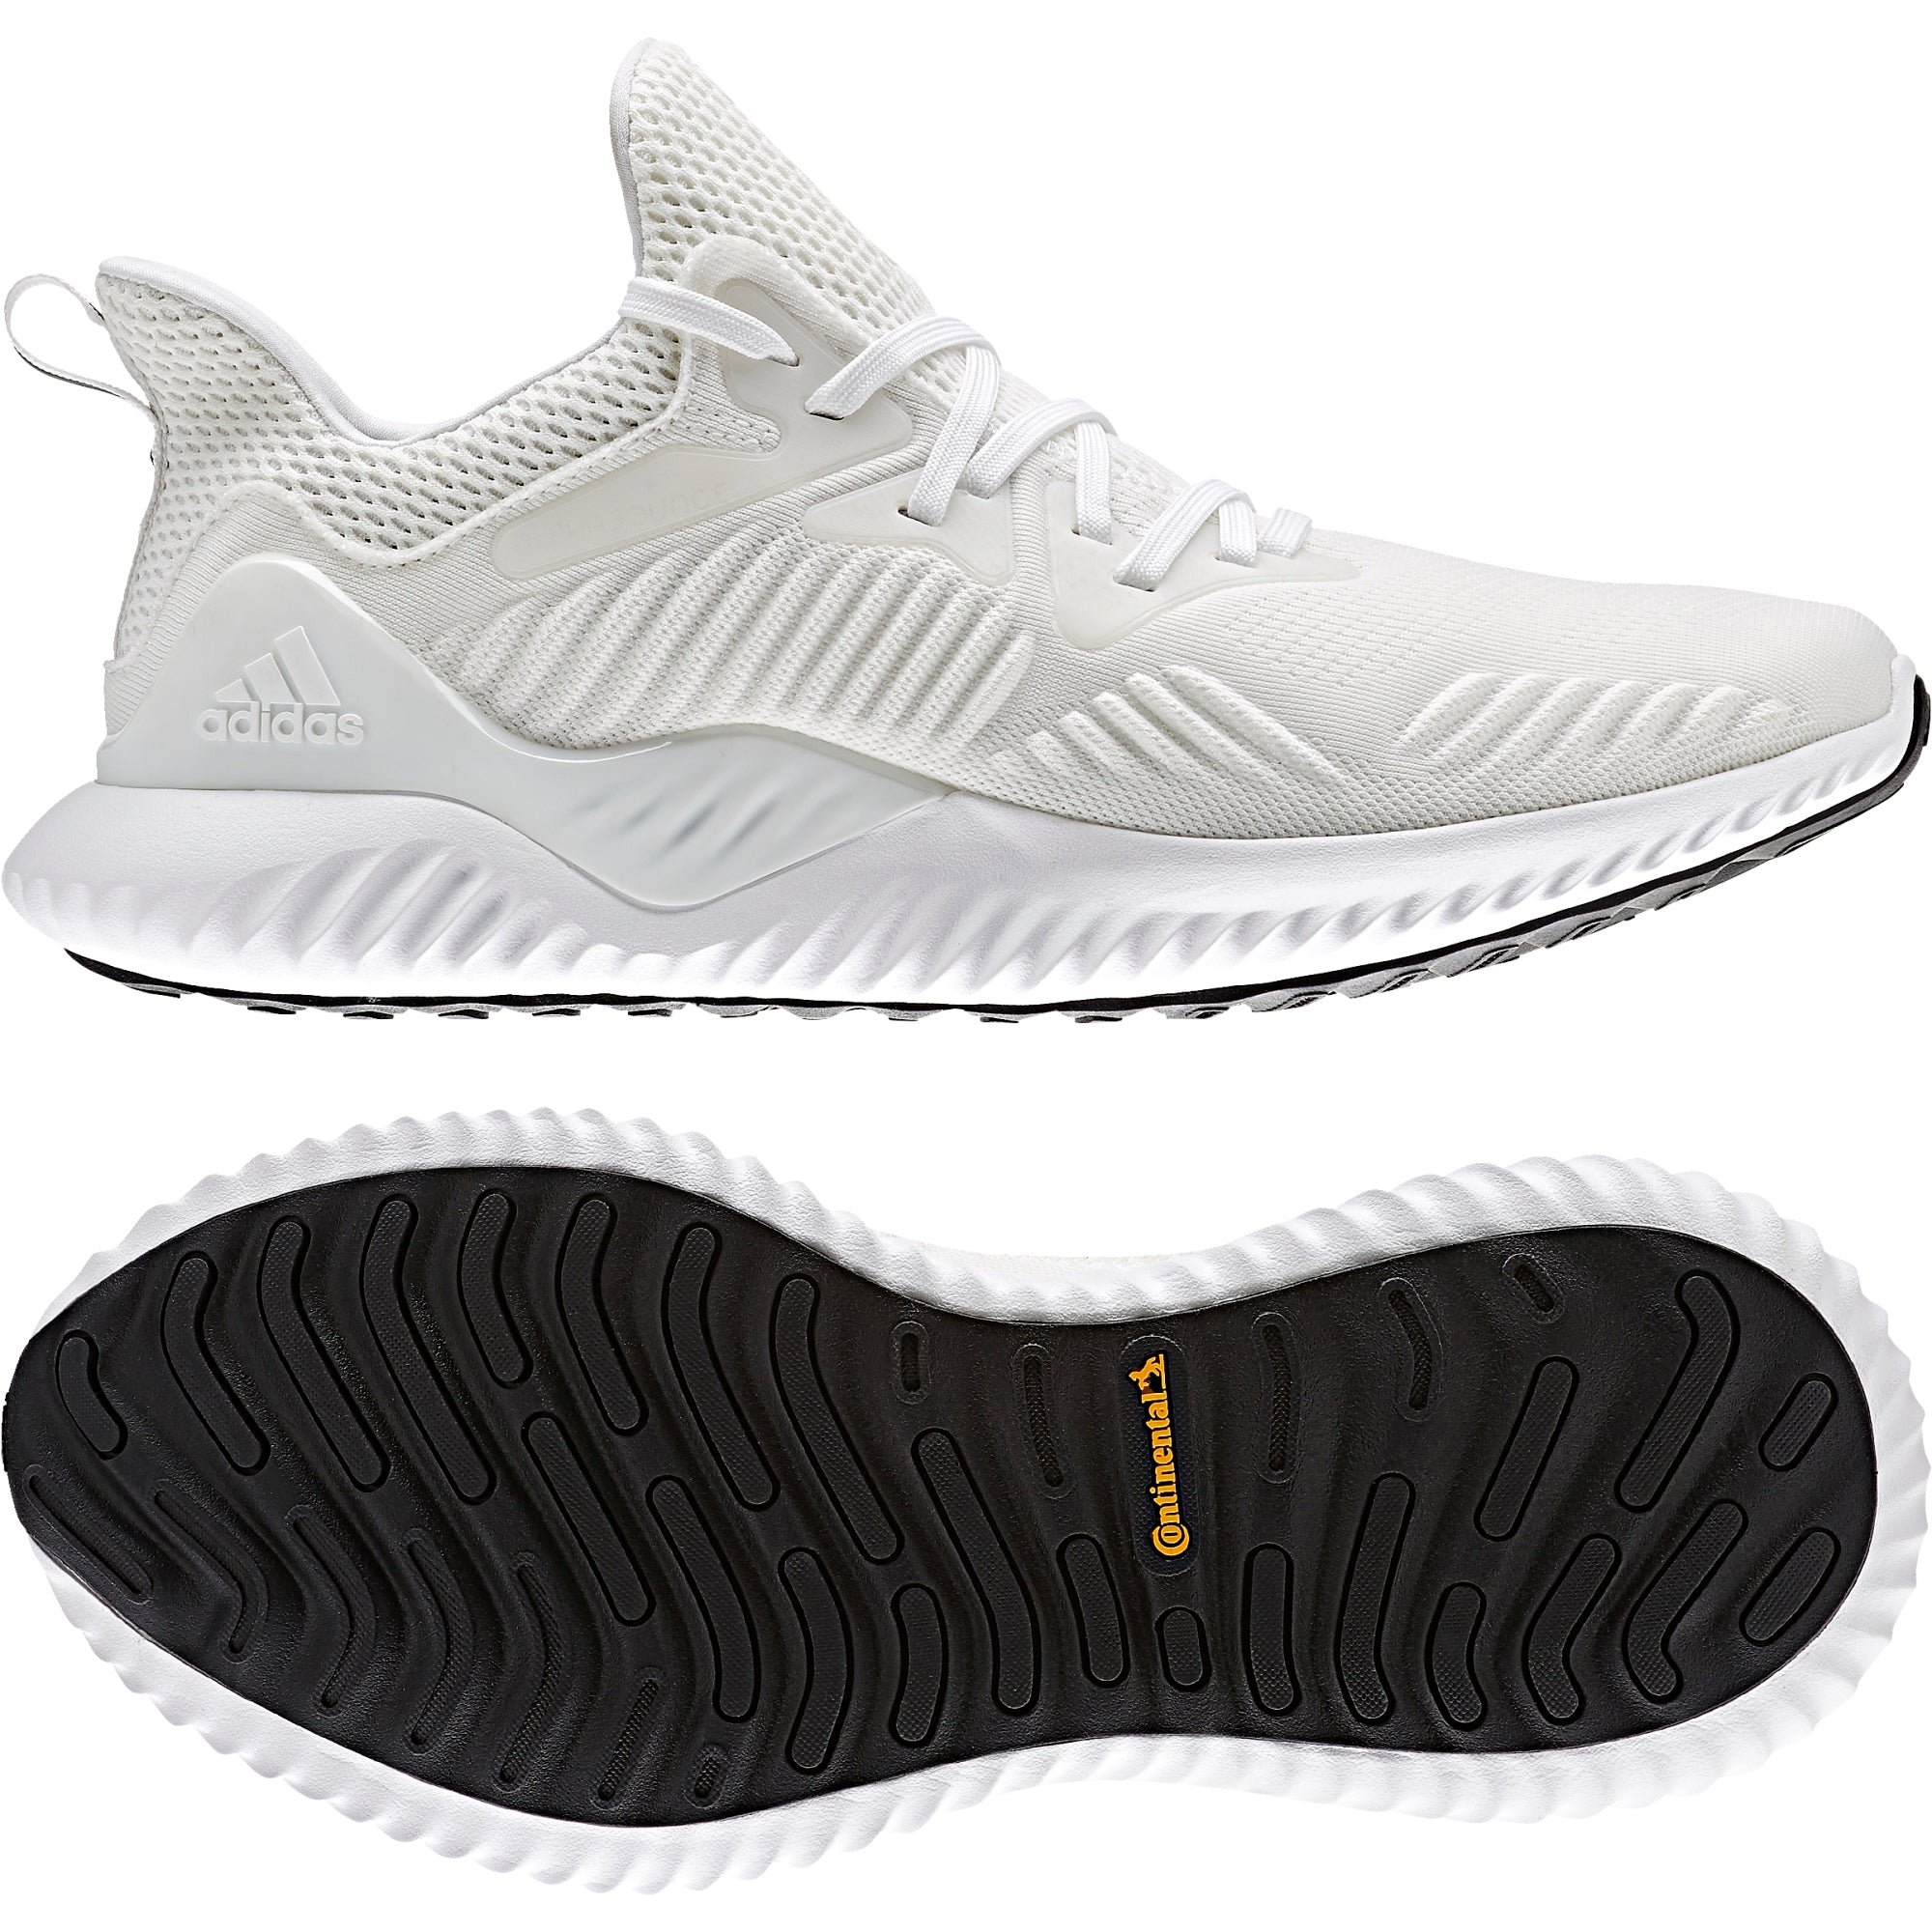 save off 04e84 9f6a6 Singapore adidas Neutral Running Shoes Men Alphabounce Beyond Running Shoes,  Cloud WhiteSilver Metallic